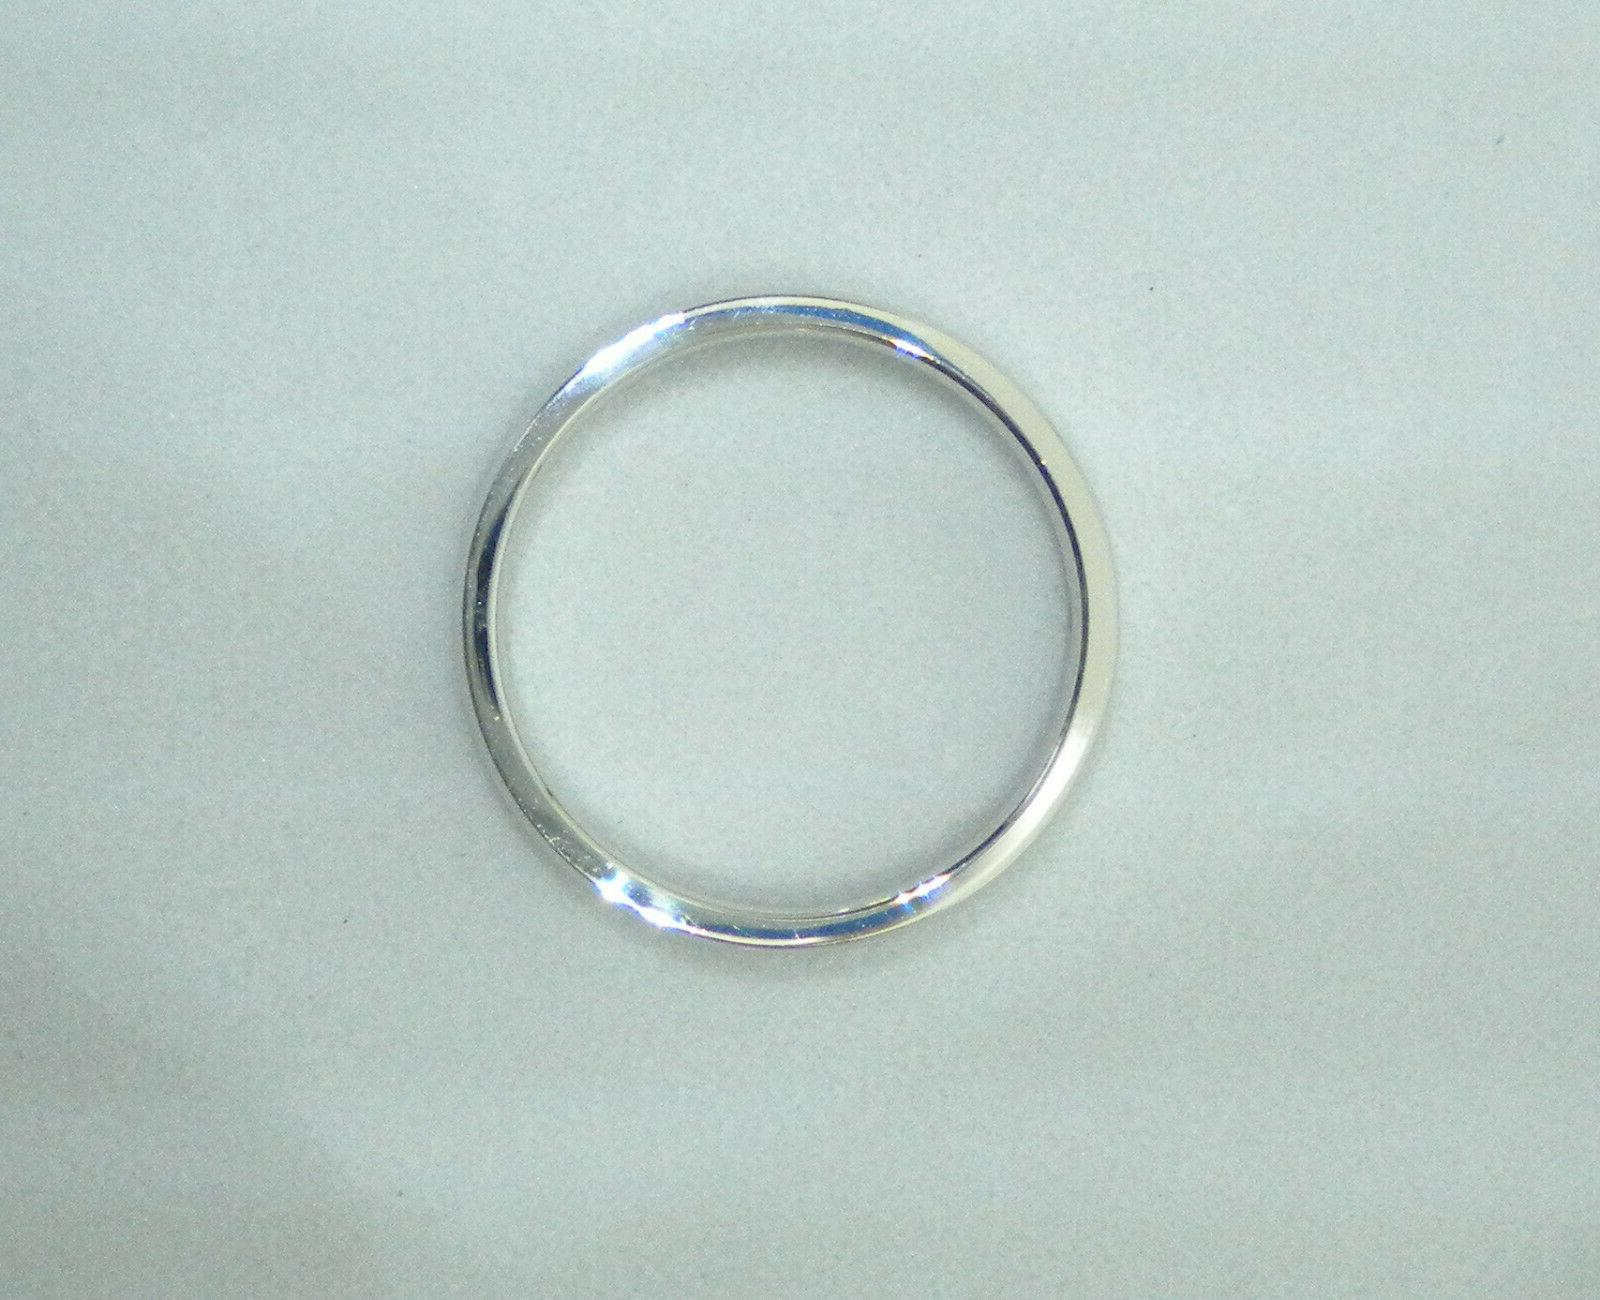 Solid White 3 mm Band 2.9 g Made USA Size Women's